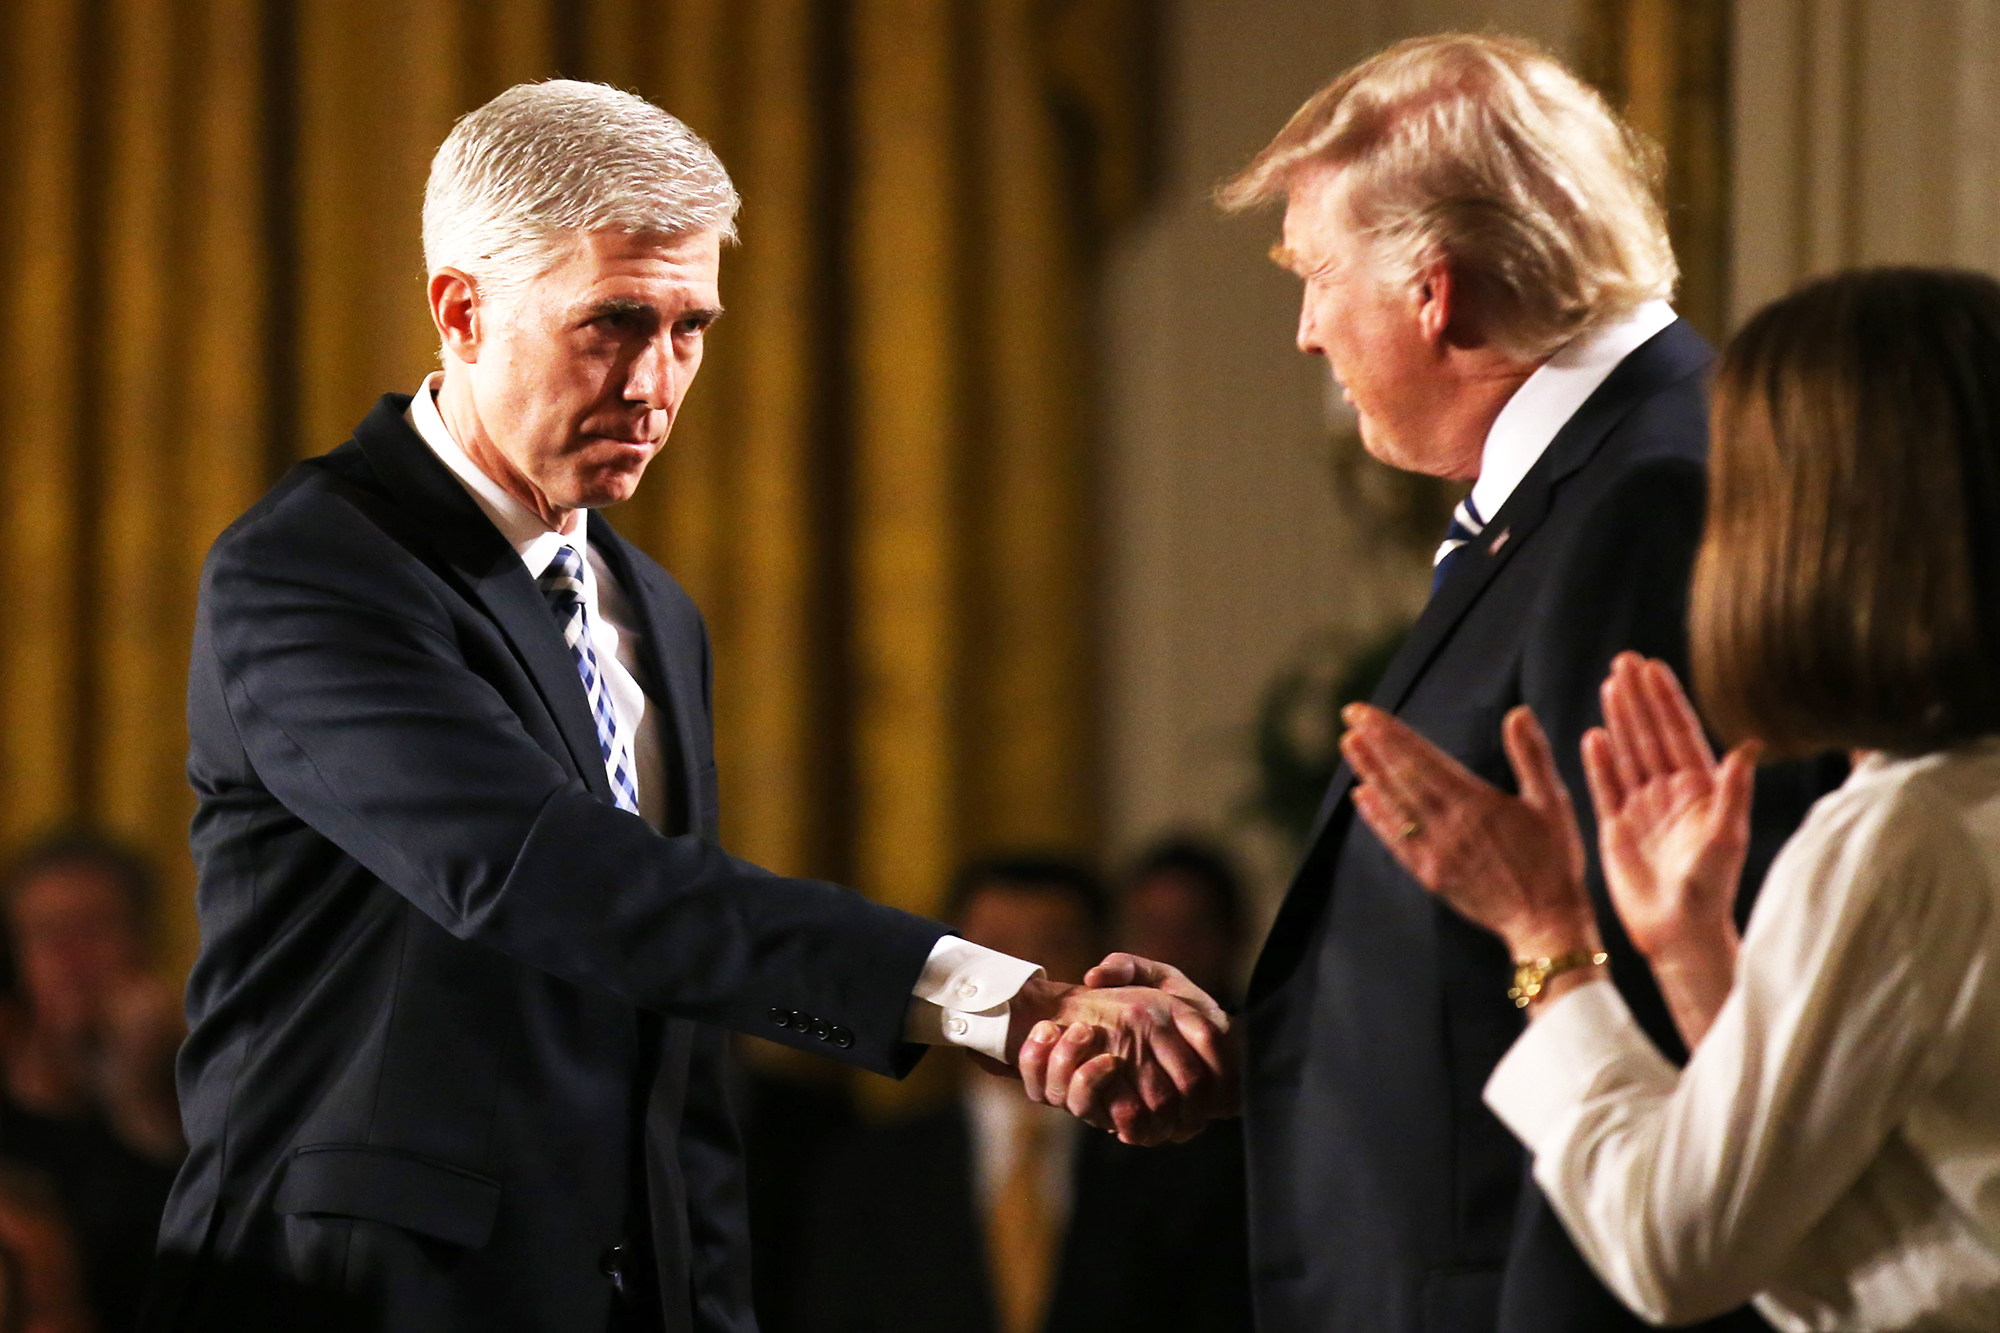 Donald Trump pulls Judge Neil Gorsuch closer to him while shaking hands in Washington, D.C., on Jan. 31, 2017.